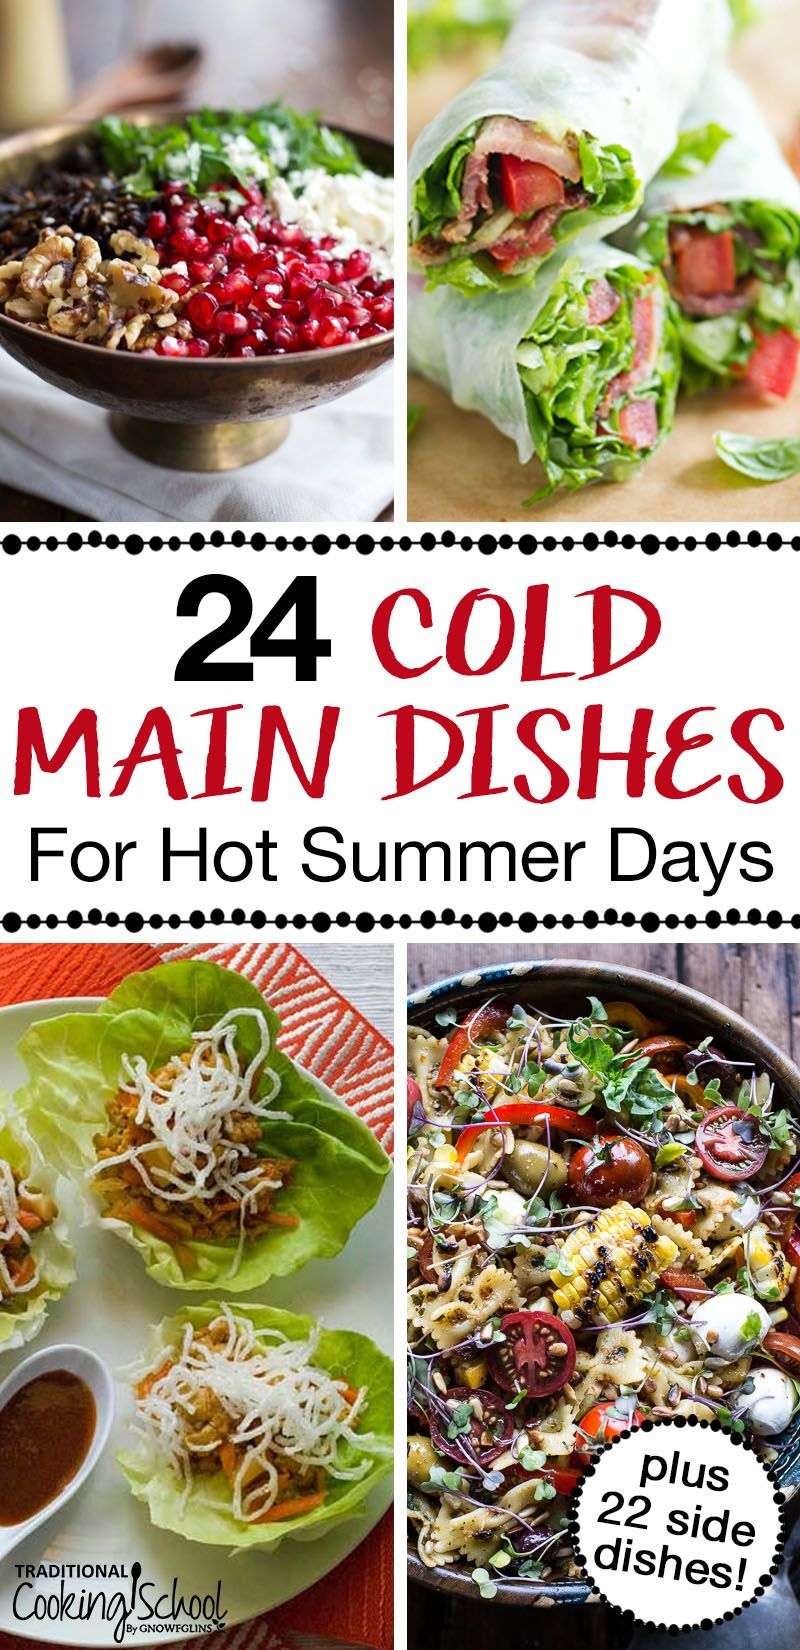 24 {Cold!} Main Dishes & 22 Sides for Hot Summer Days images